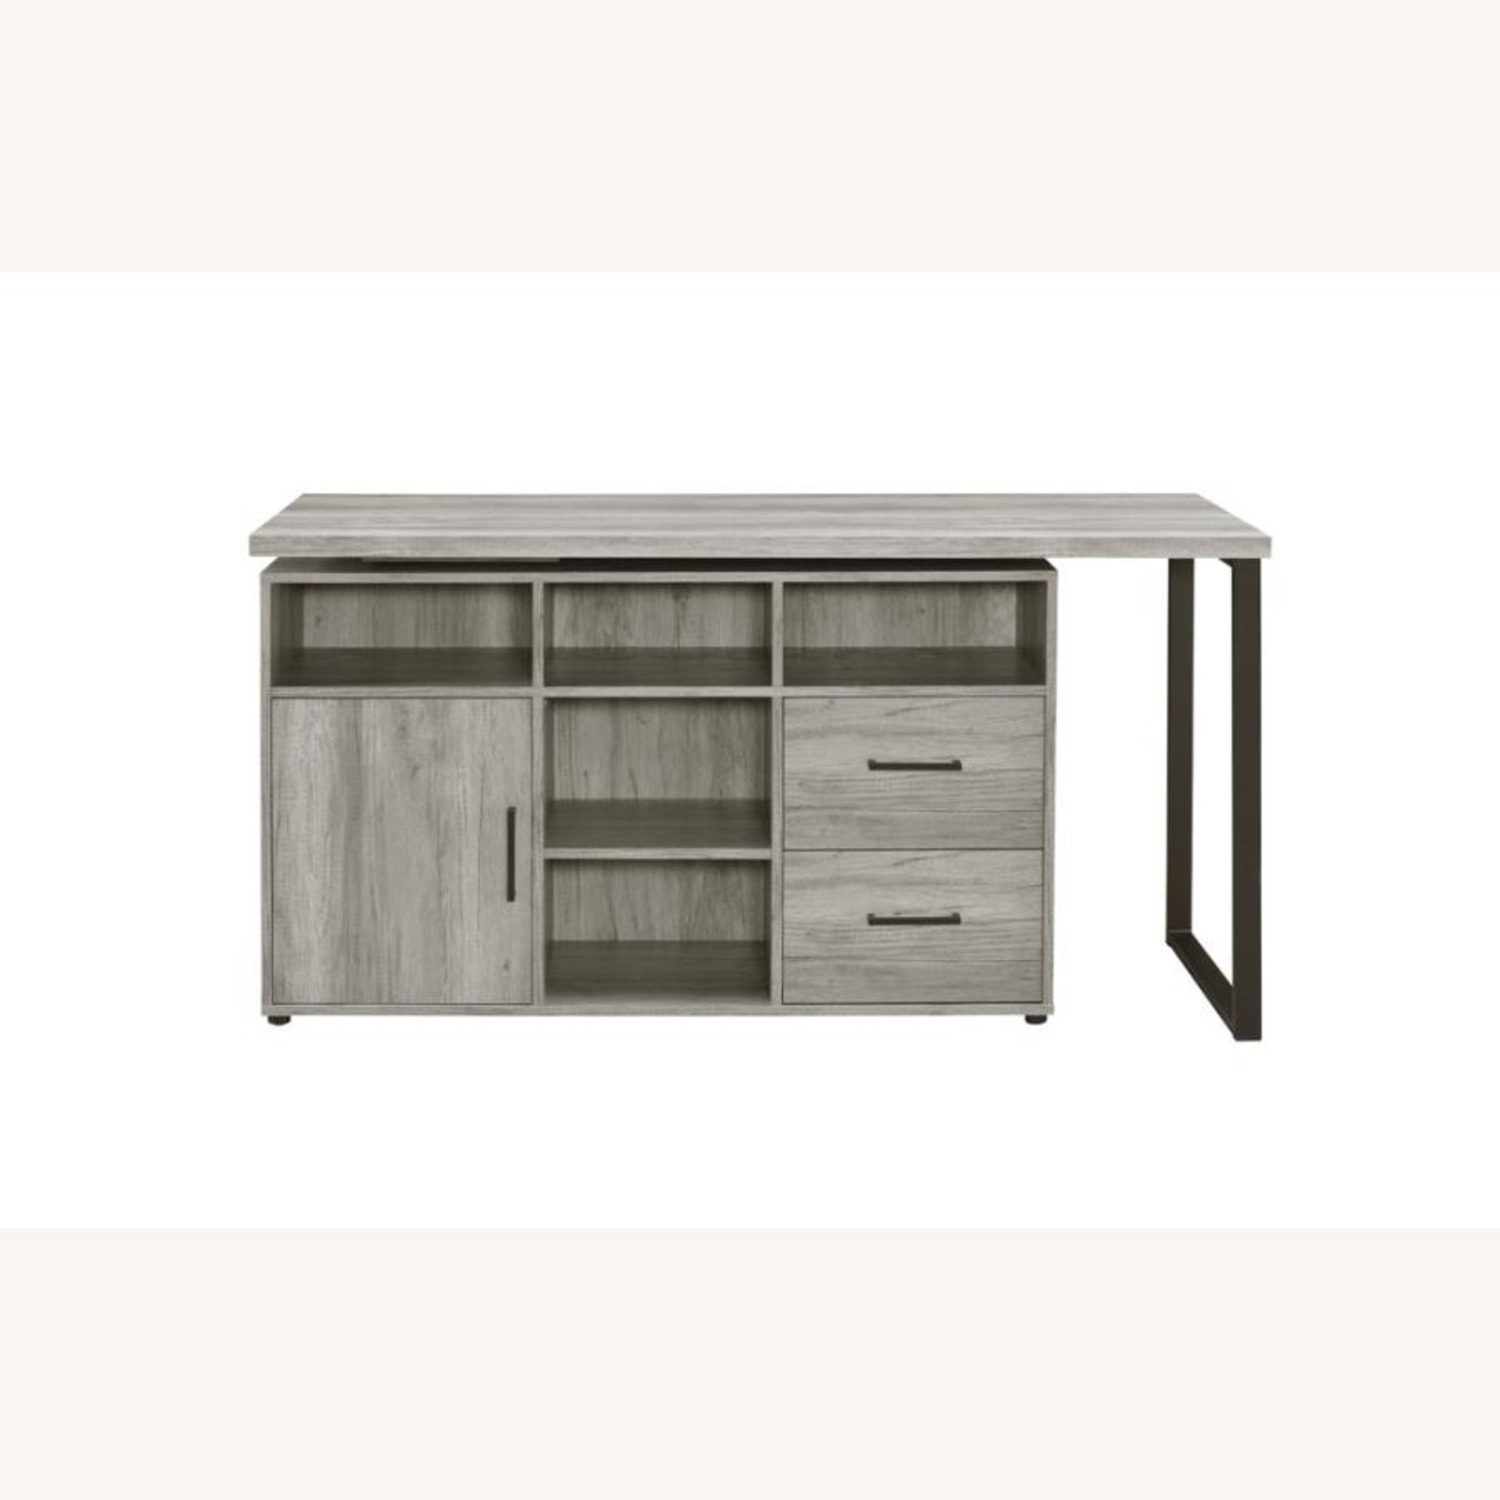 L-Shaped Office Desk In Grey Driftwood Finish - image-5